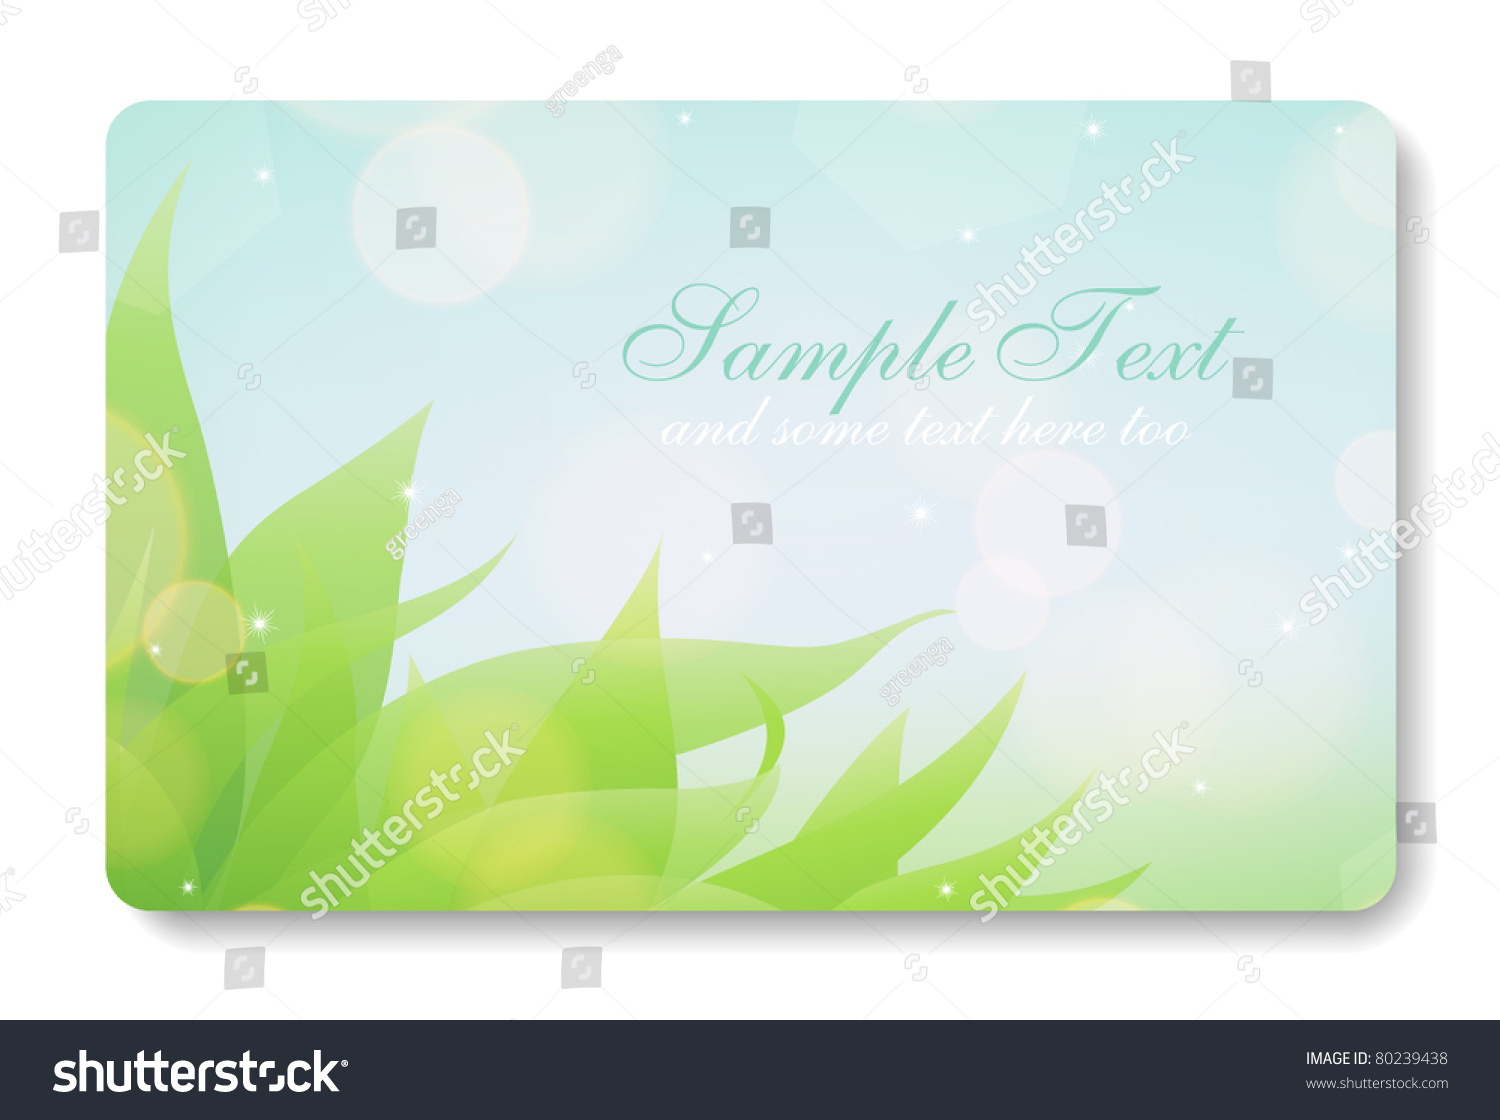 Credit Card Business Card Background Design Stock Vector 80239438 ...